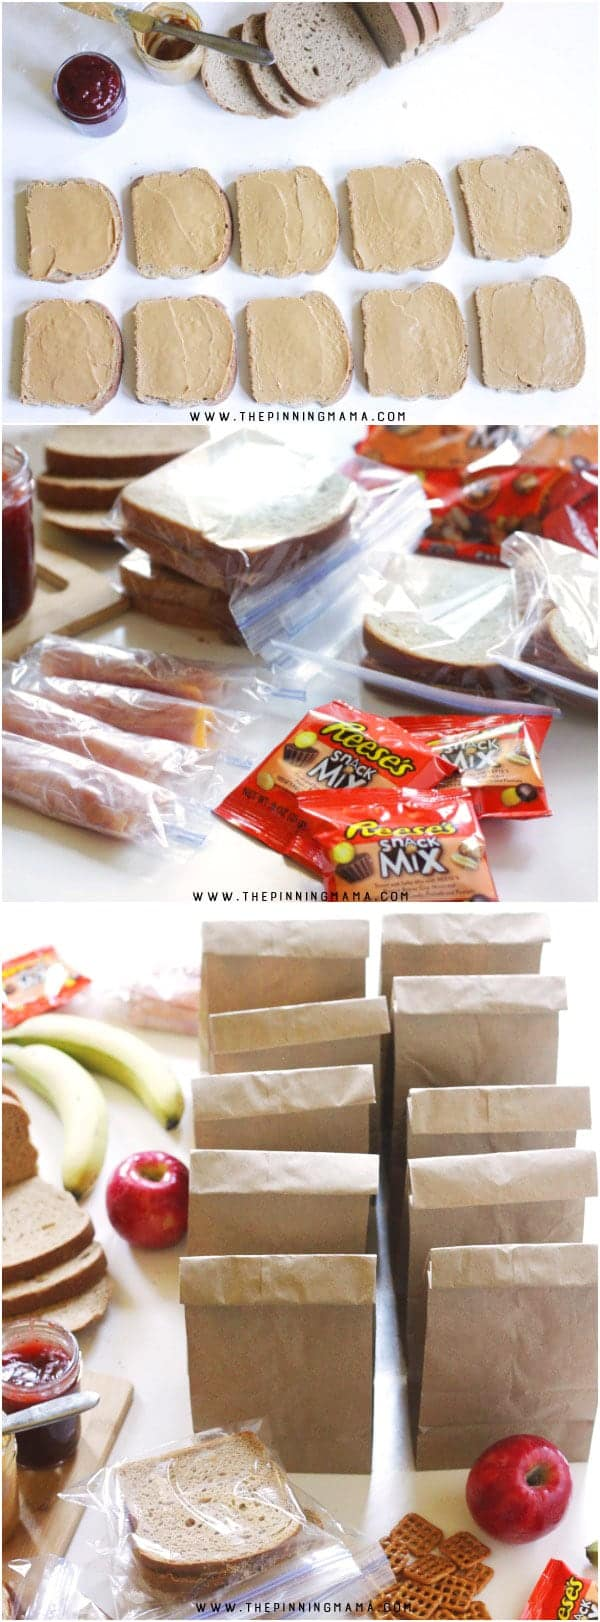 How to make freezer lunches for kids. Make the mornings 100x easier by having lunch already ready to go! This is quick, easy and my kids can even do most of the work themselves! What a great kitchen hack!